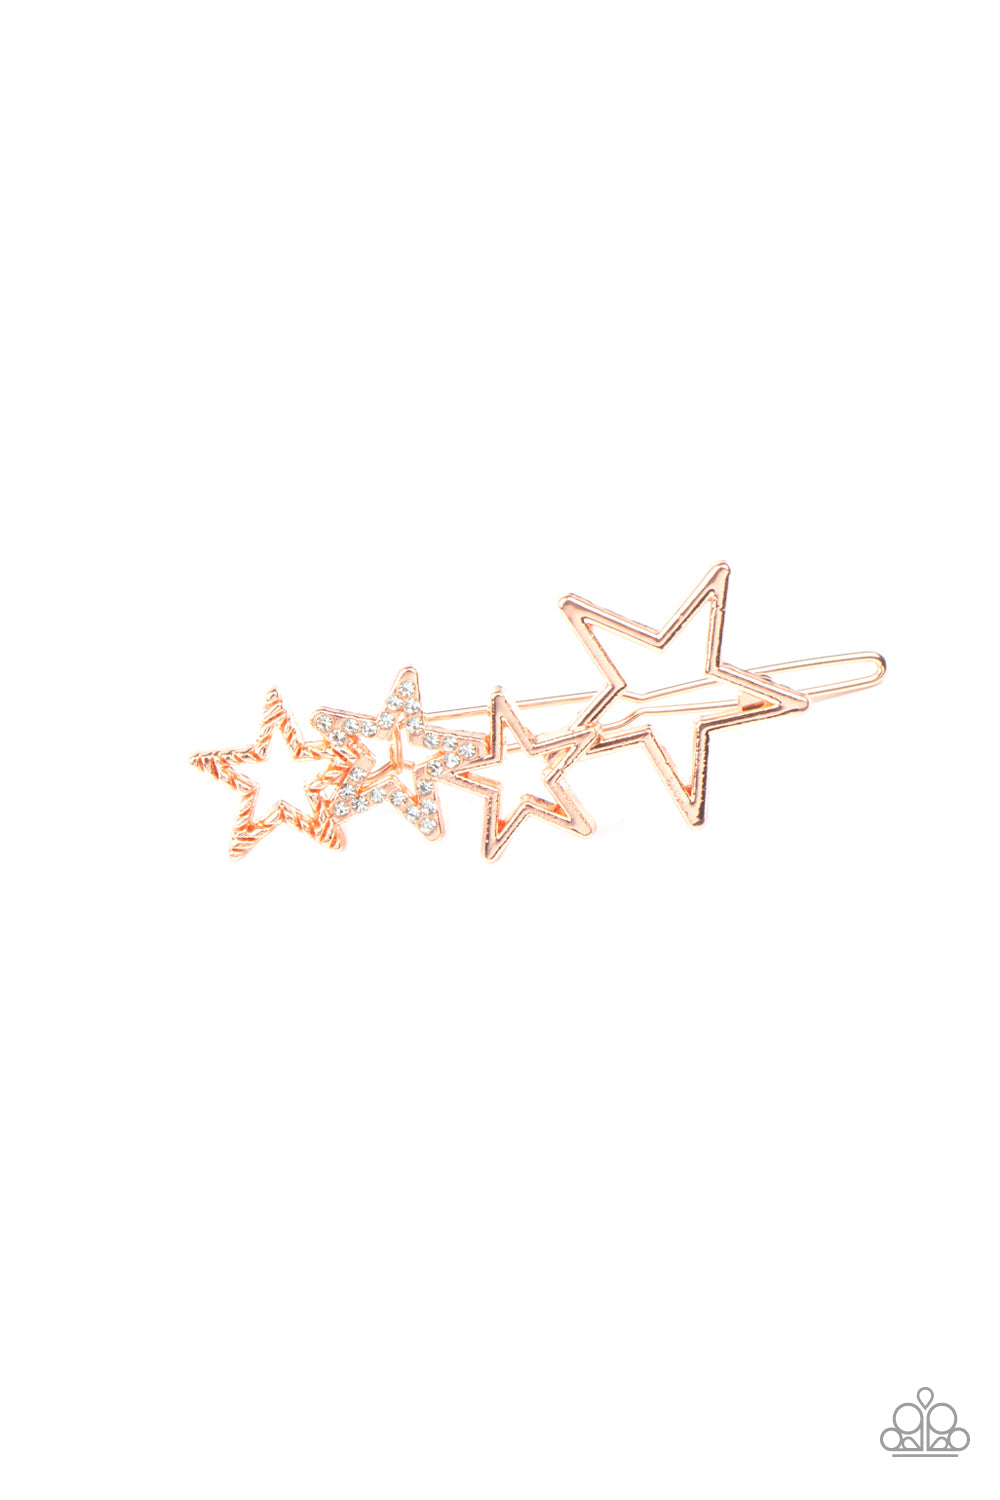 From STAR To Finish - Copper - Barrette